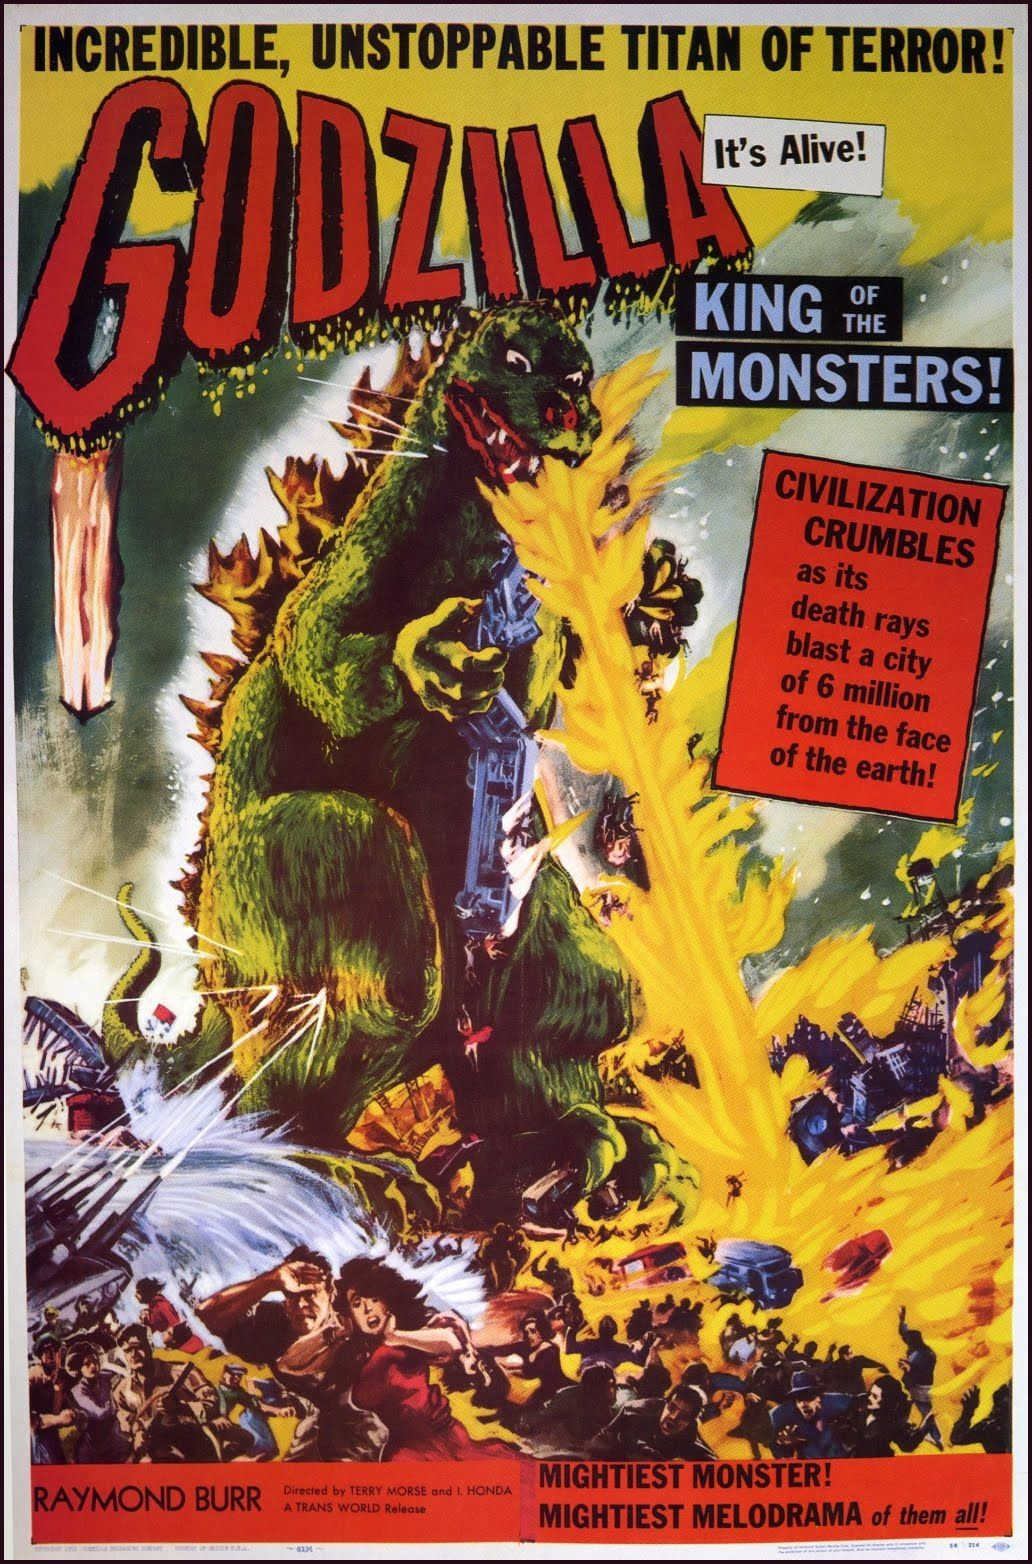 Godzilla On The Screen 1954 2014 Classic Movie Posters Movie Posters Vintage Science Fiction Movie Posters